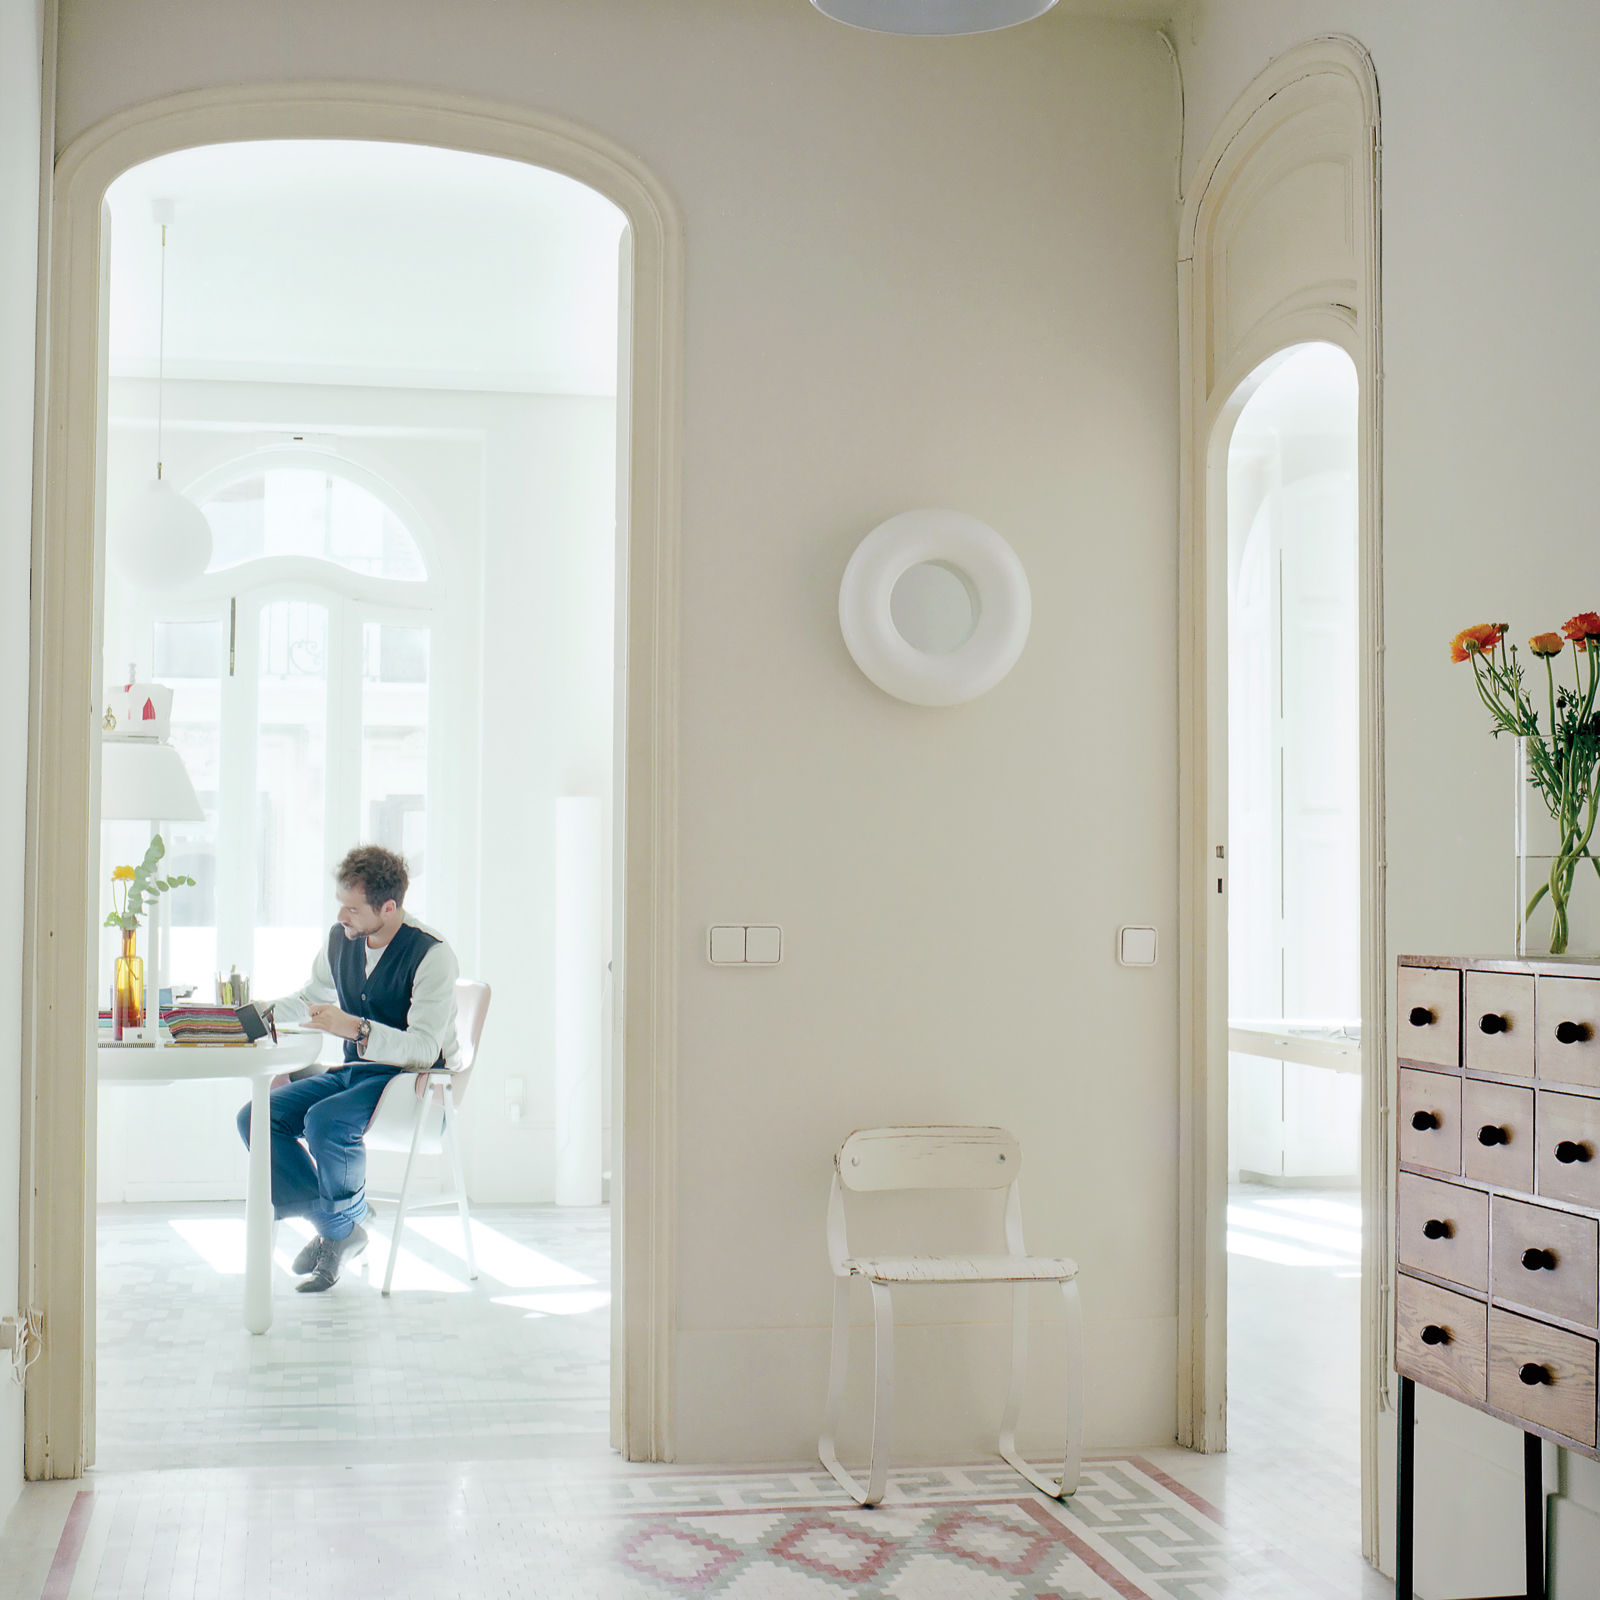 Natural light studio with cement tile floors